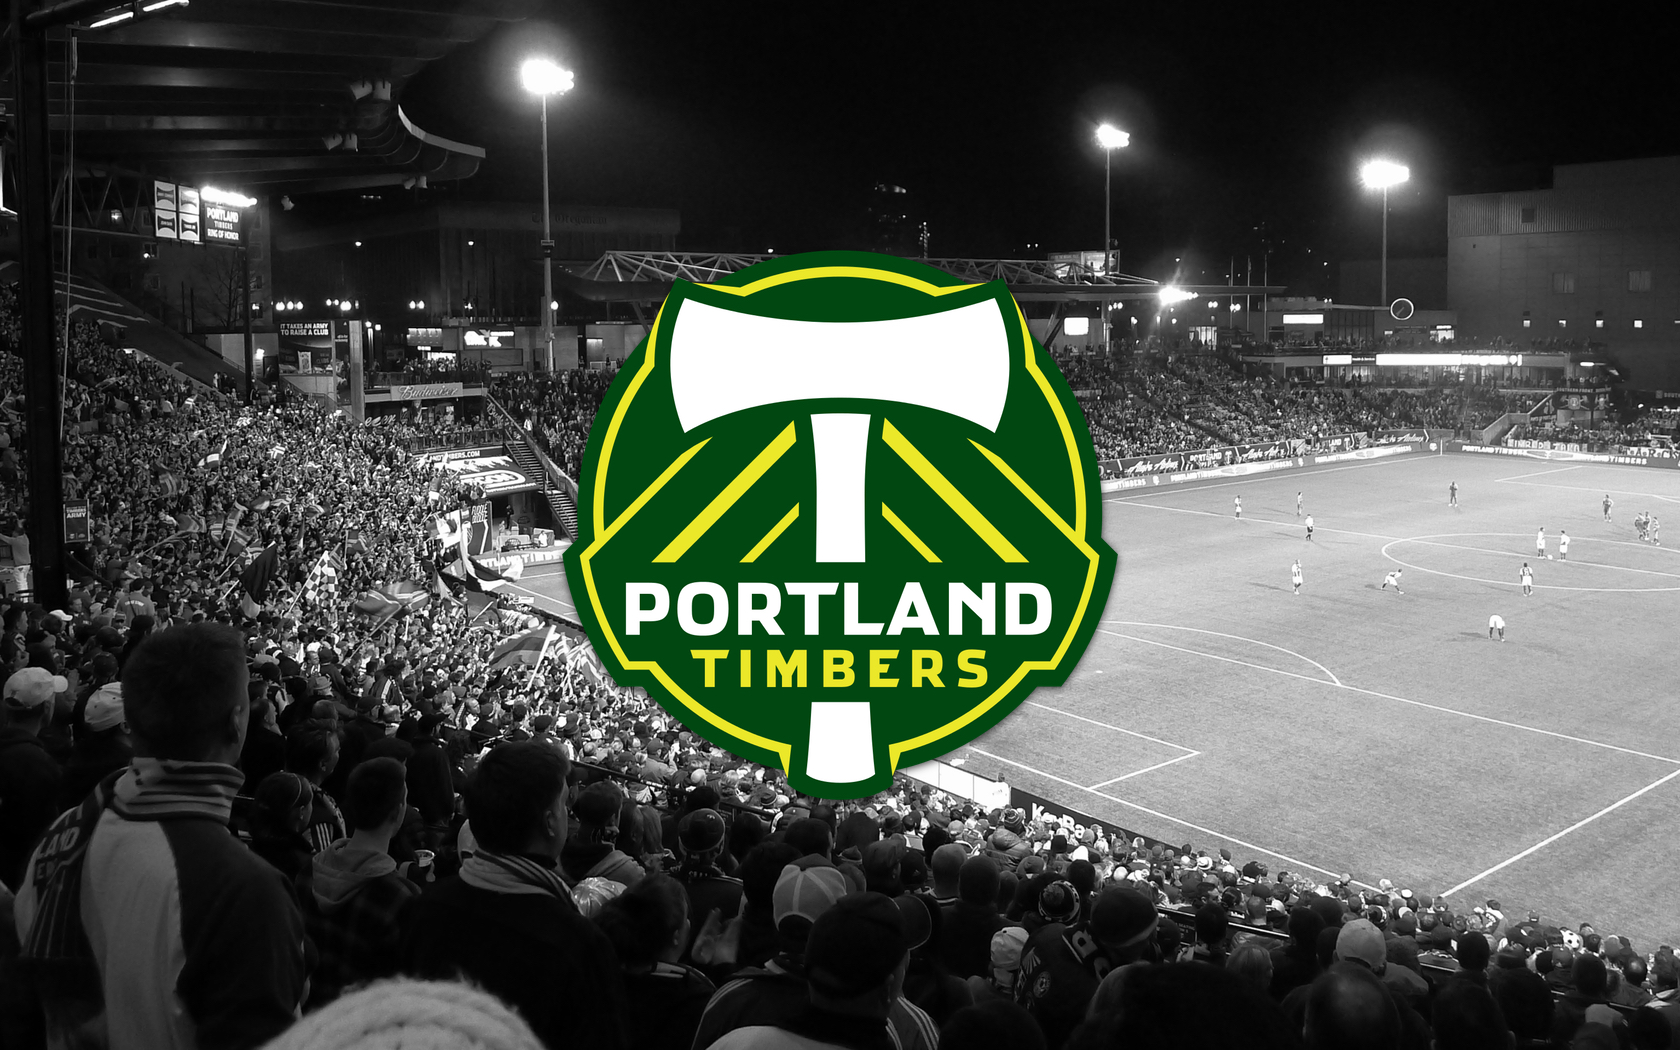 1680x1050 - Portland Timbers Wallpapers 5